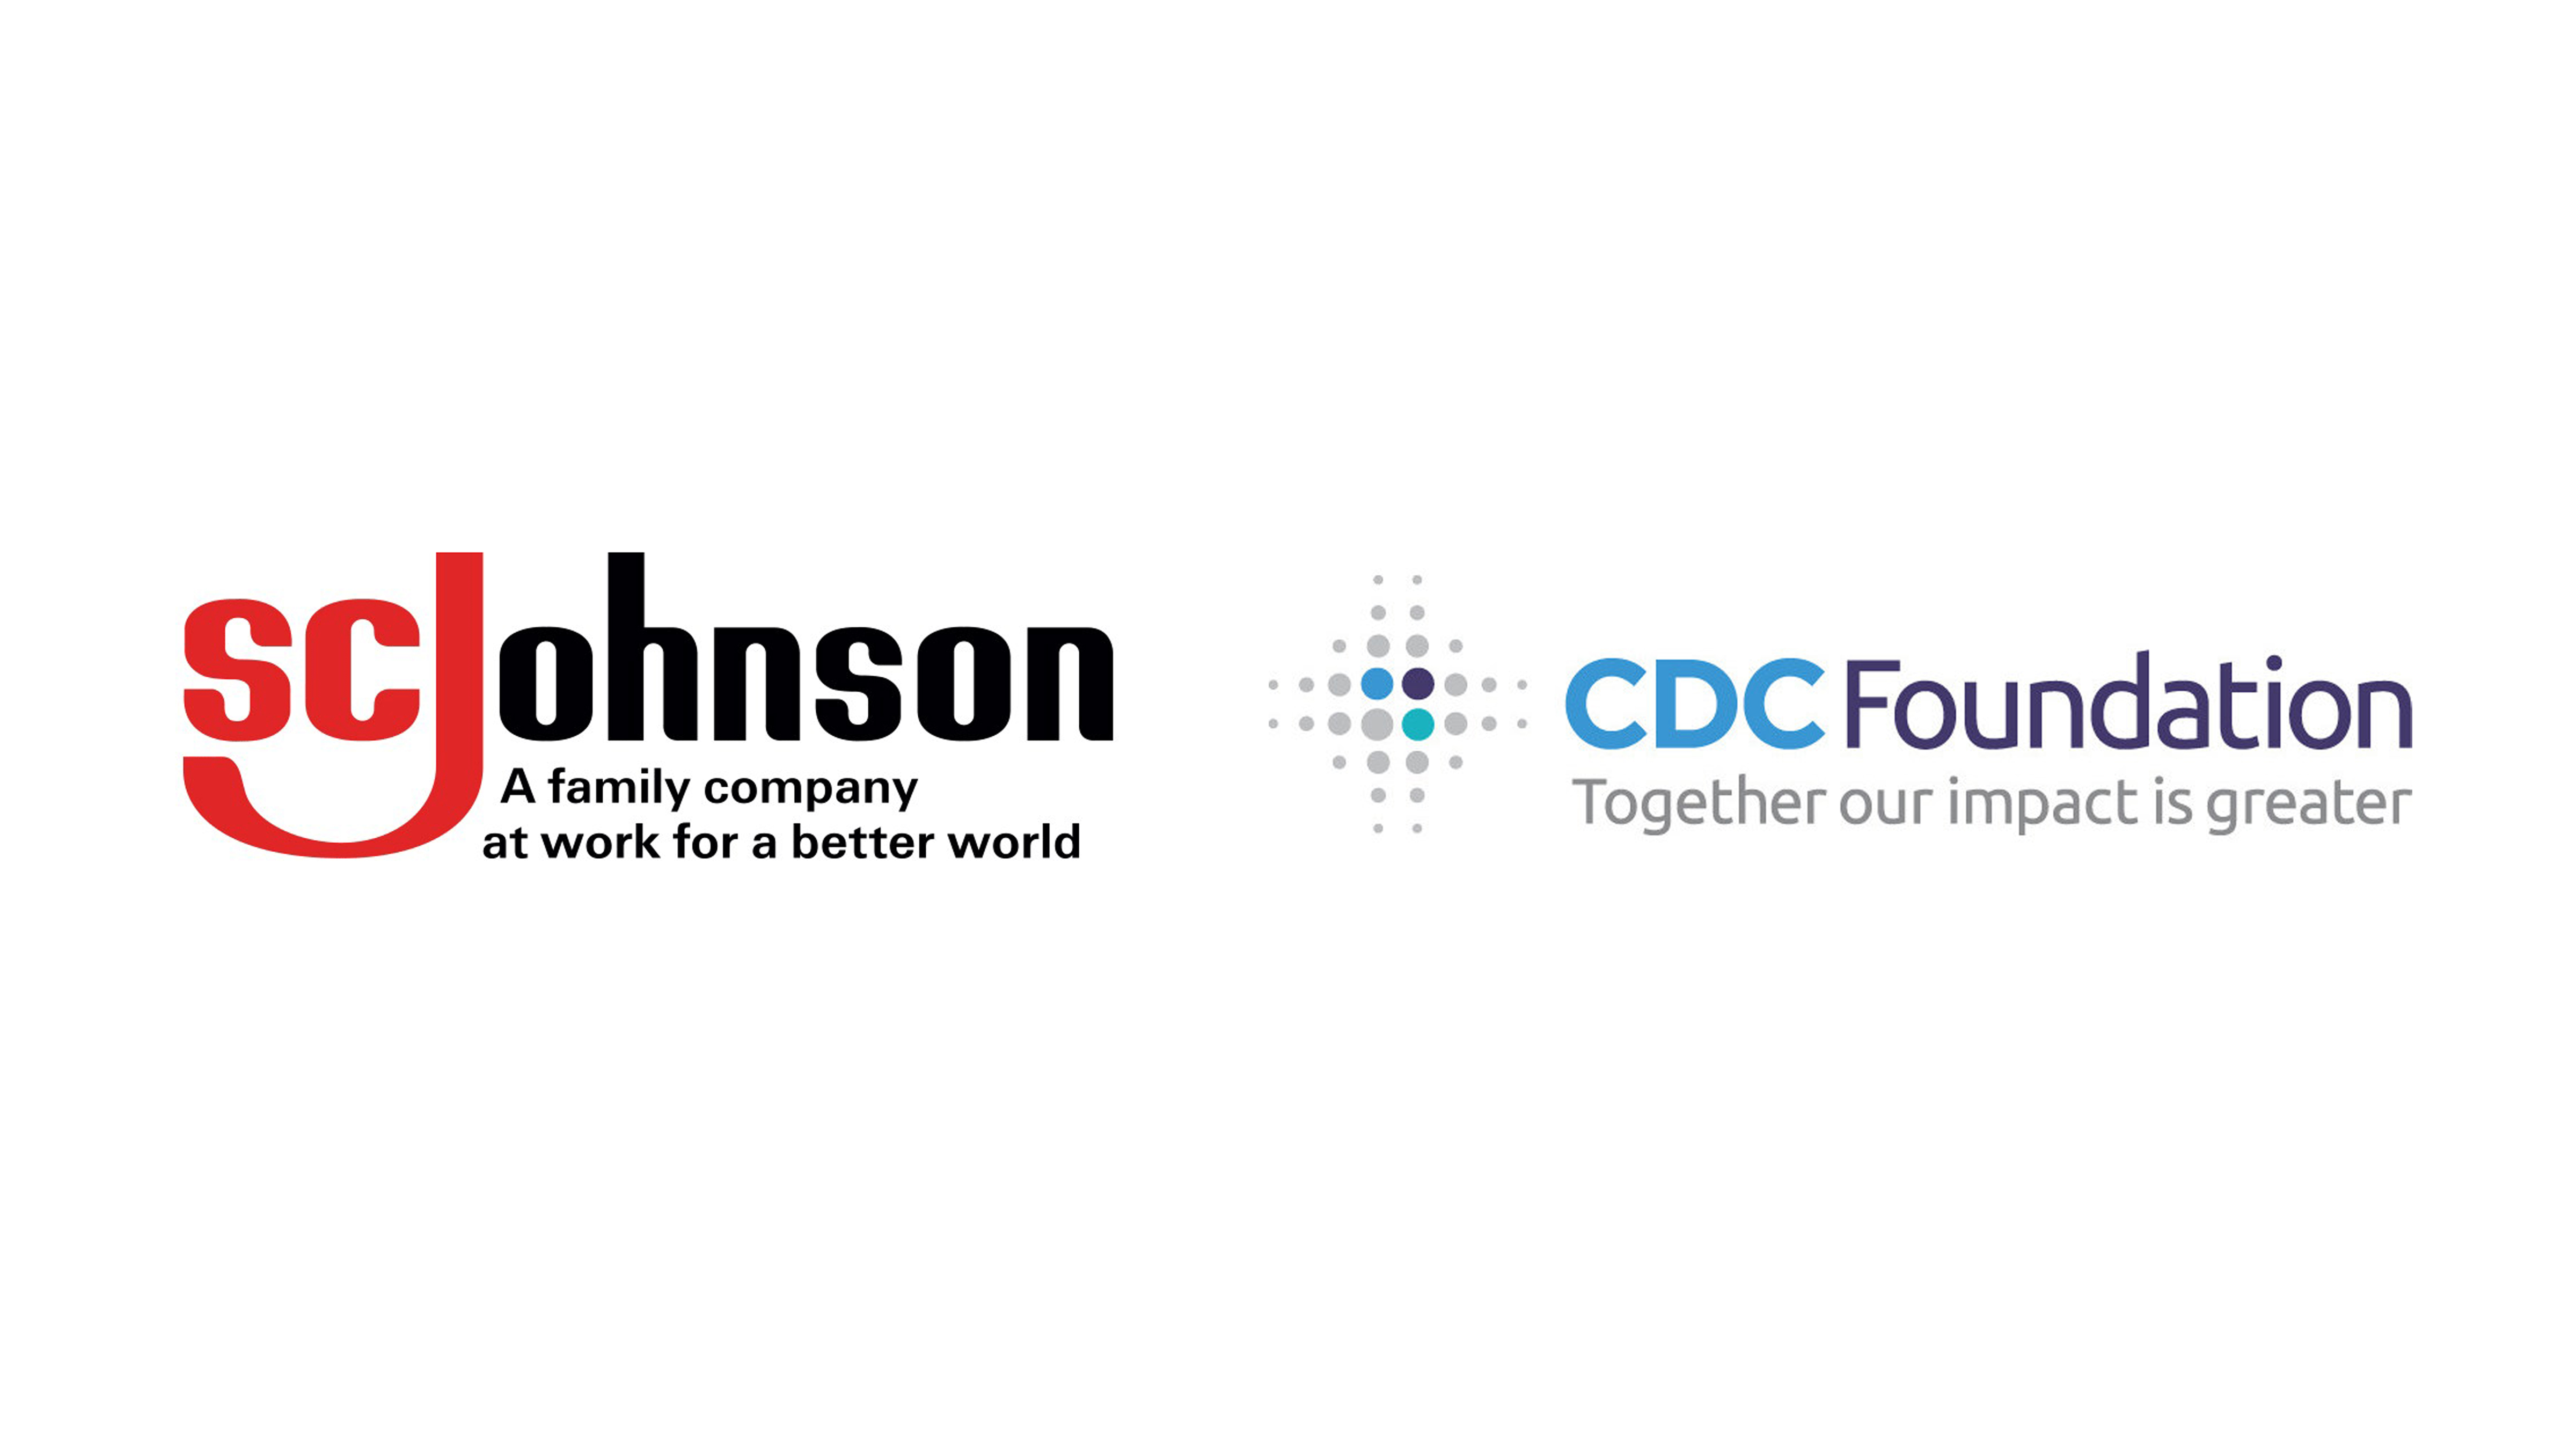 Sc Johnson and the CDC Foundation